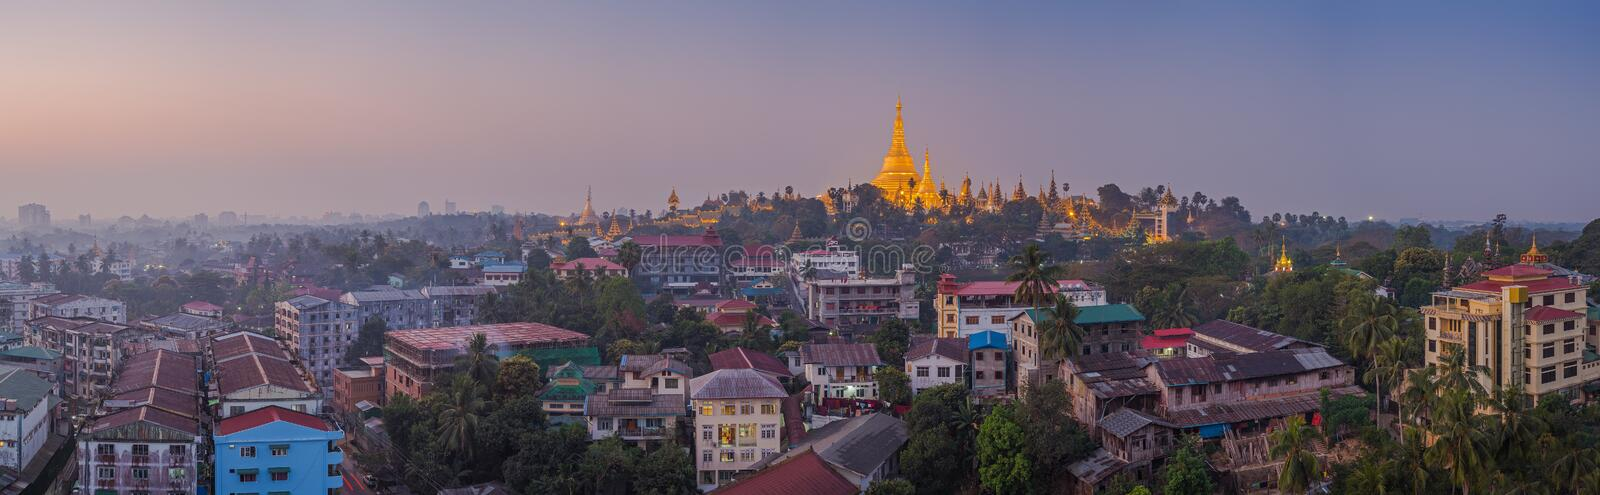 View at dawn of the Shwedagon Pagoda royalty free stock images